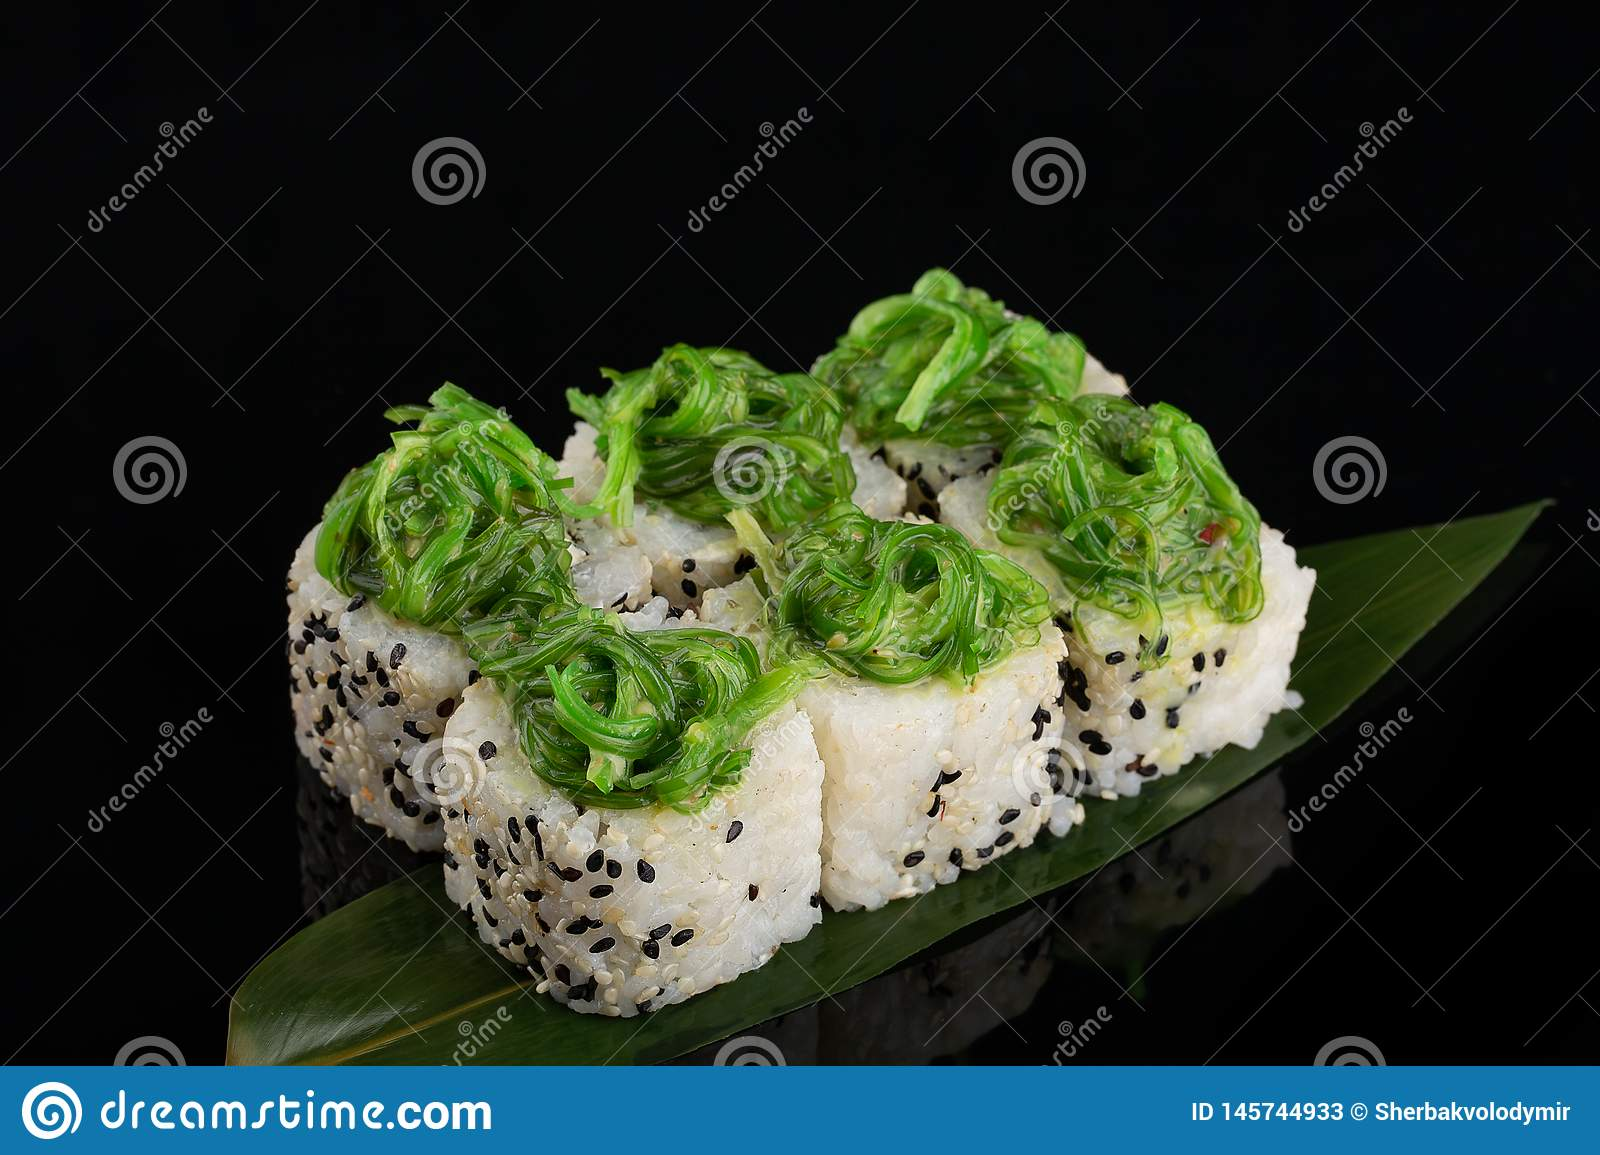 Vegetable maki rolls with seaweed on banana leaf at black background